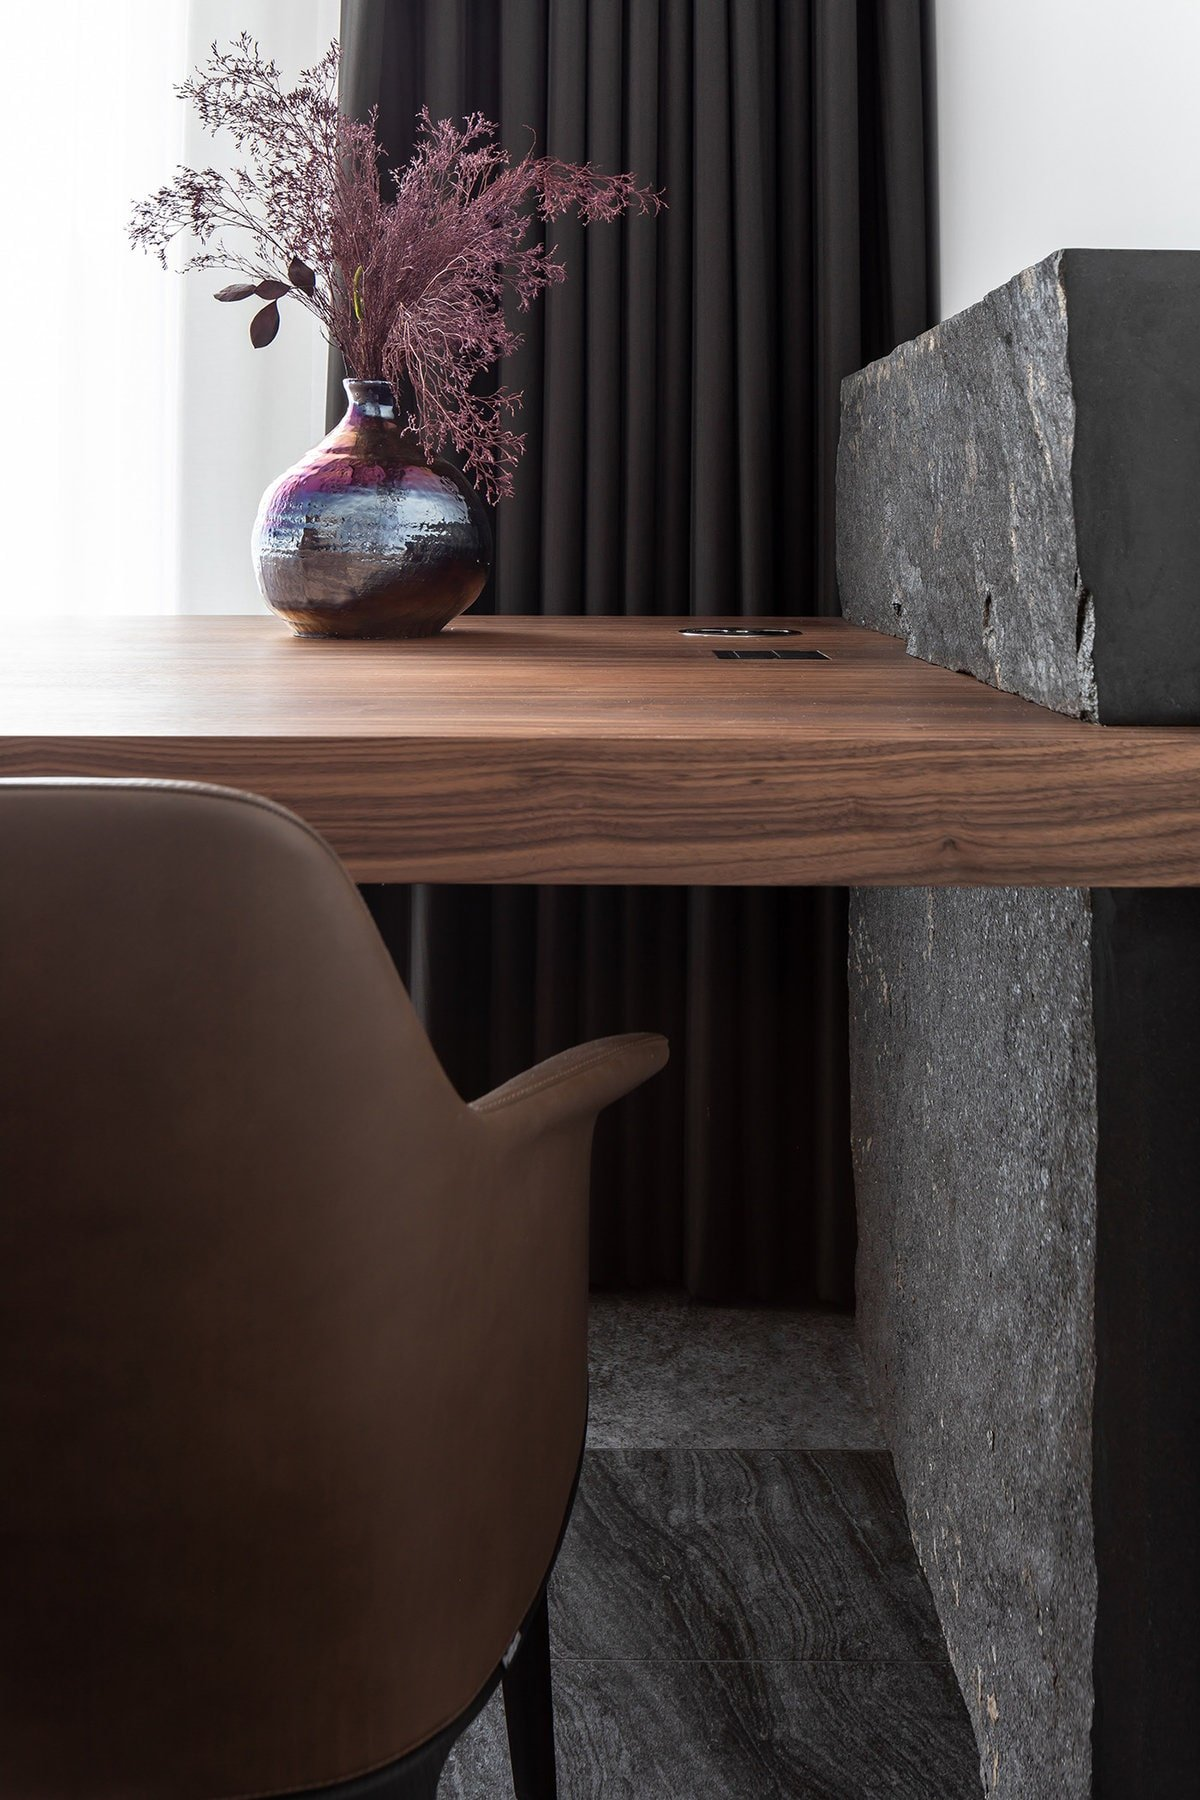 A close inspection of the corner shows more of the black marble stone panel that supports the wooden desk. This also shows the dark curtains that can close to eliminate the natural lighting completely.